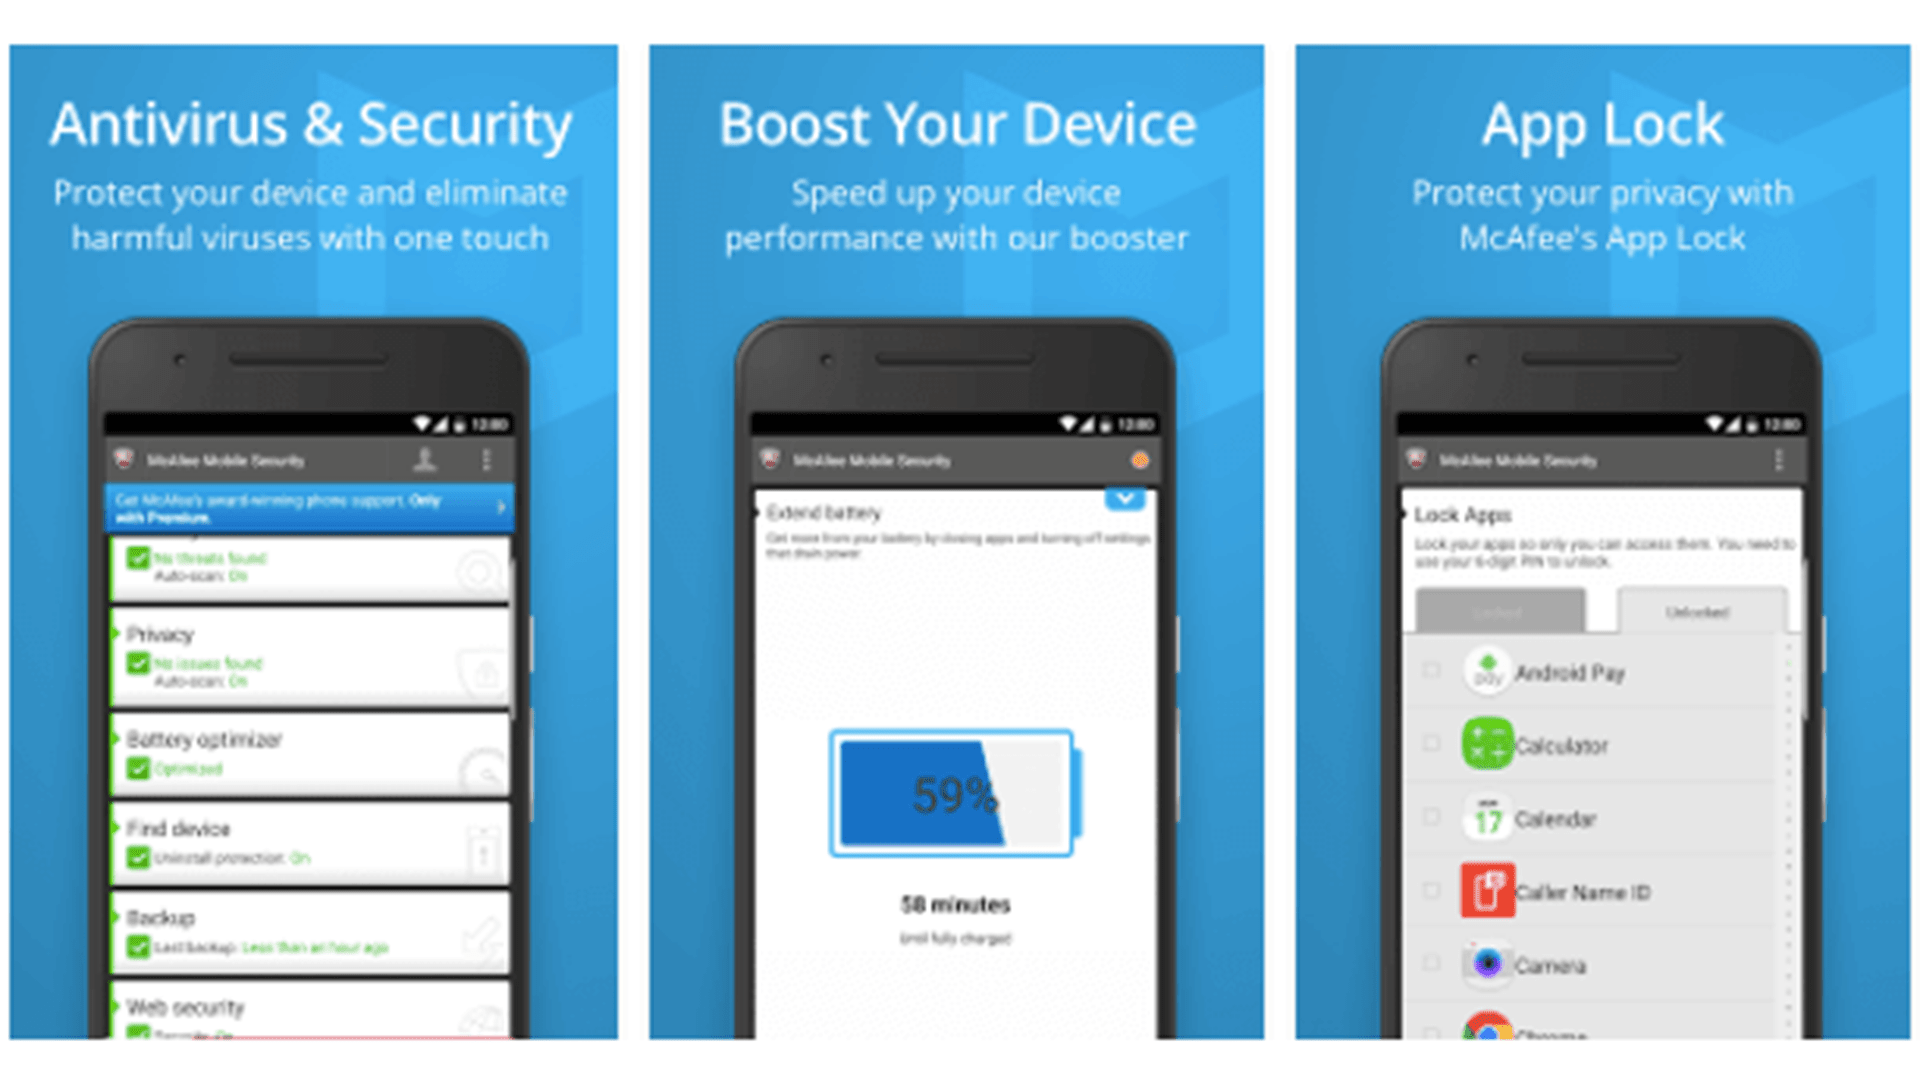 McAfee Mobile Security & Lock Screen Shots